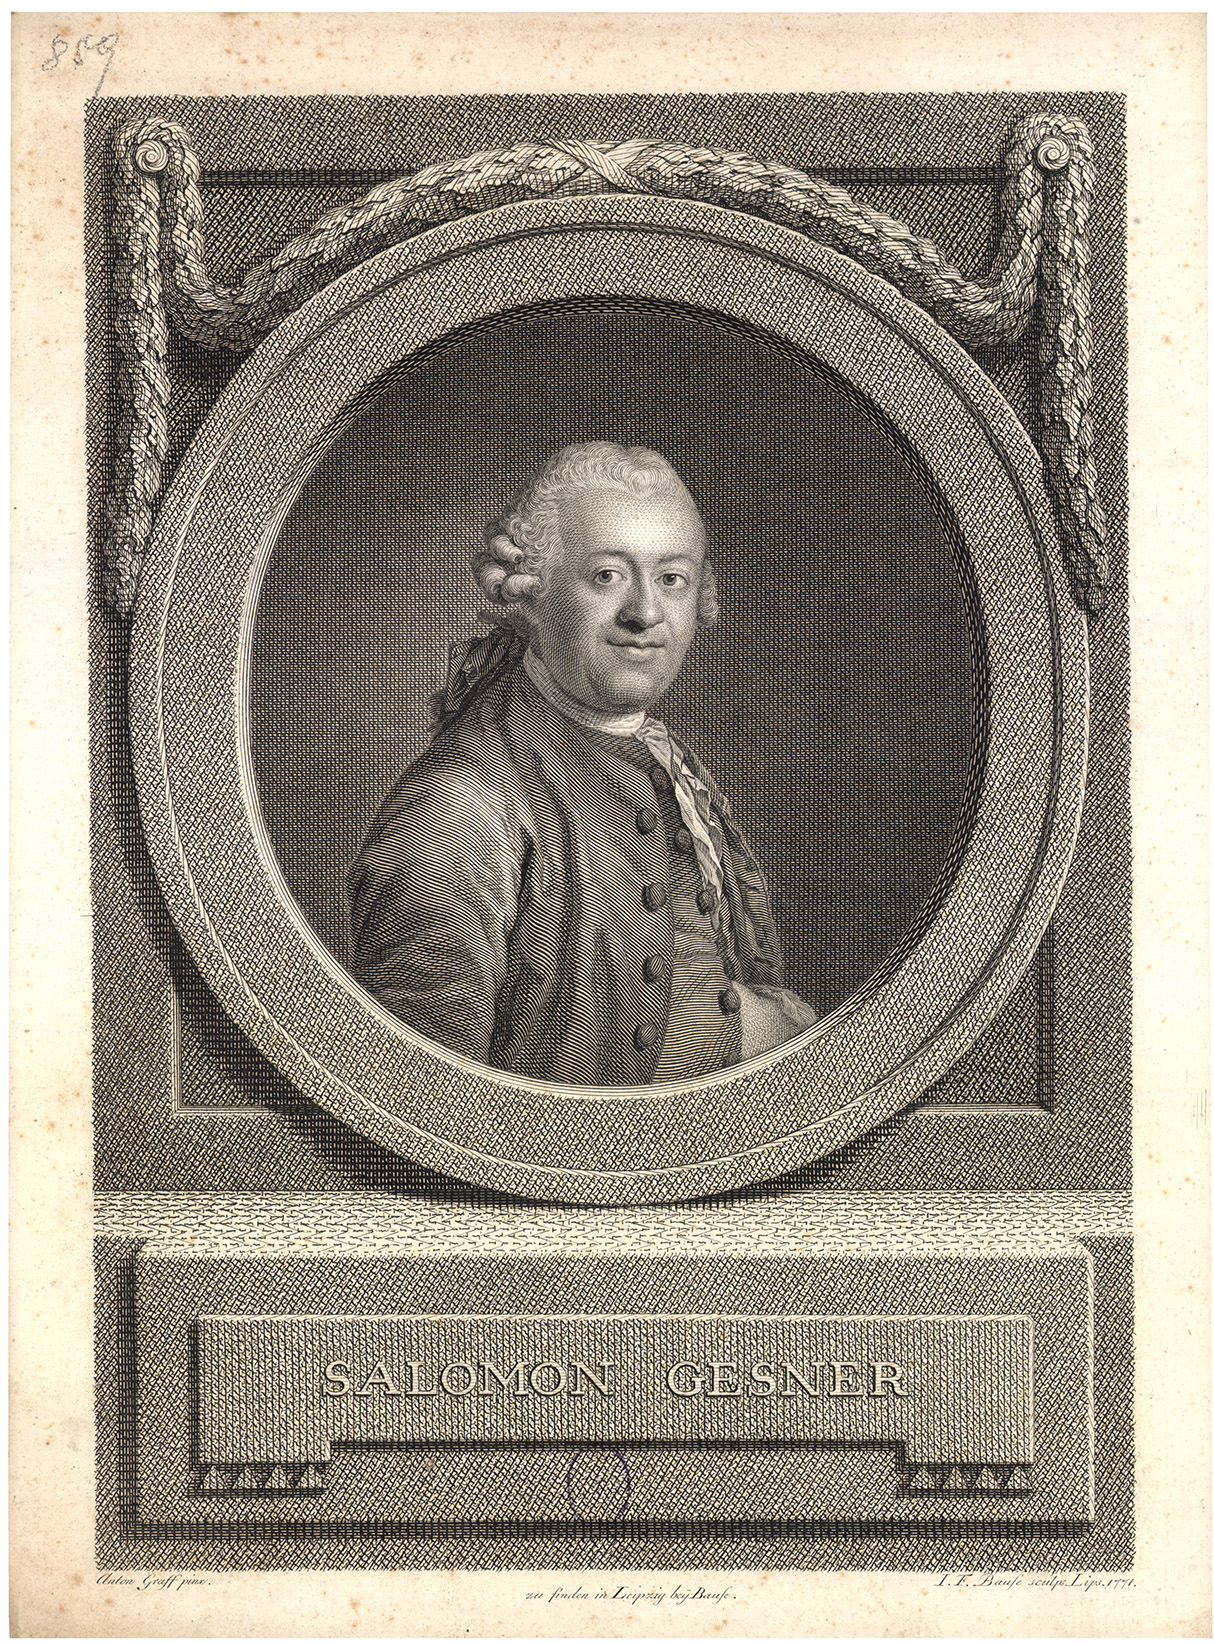 Salomon Gesner